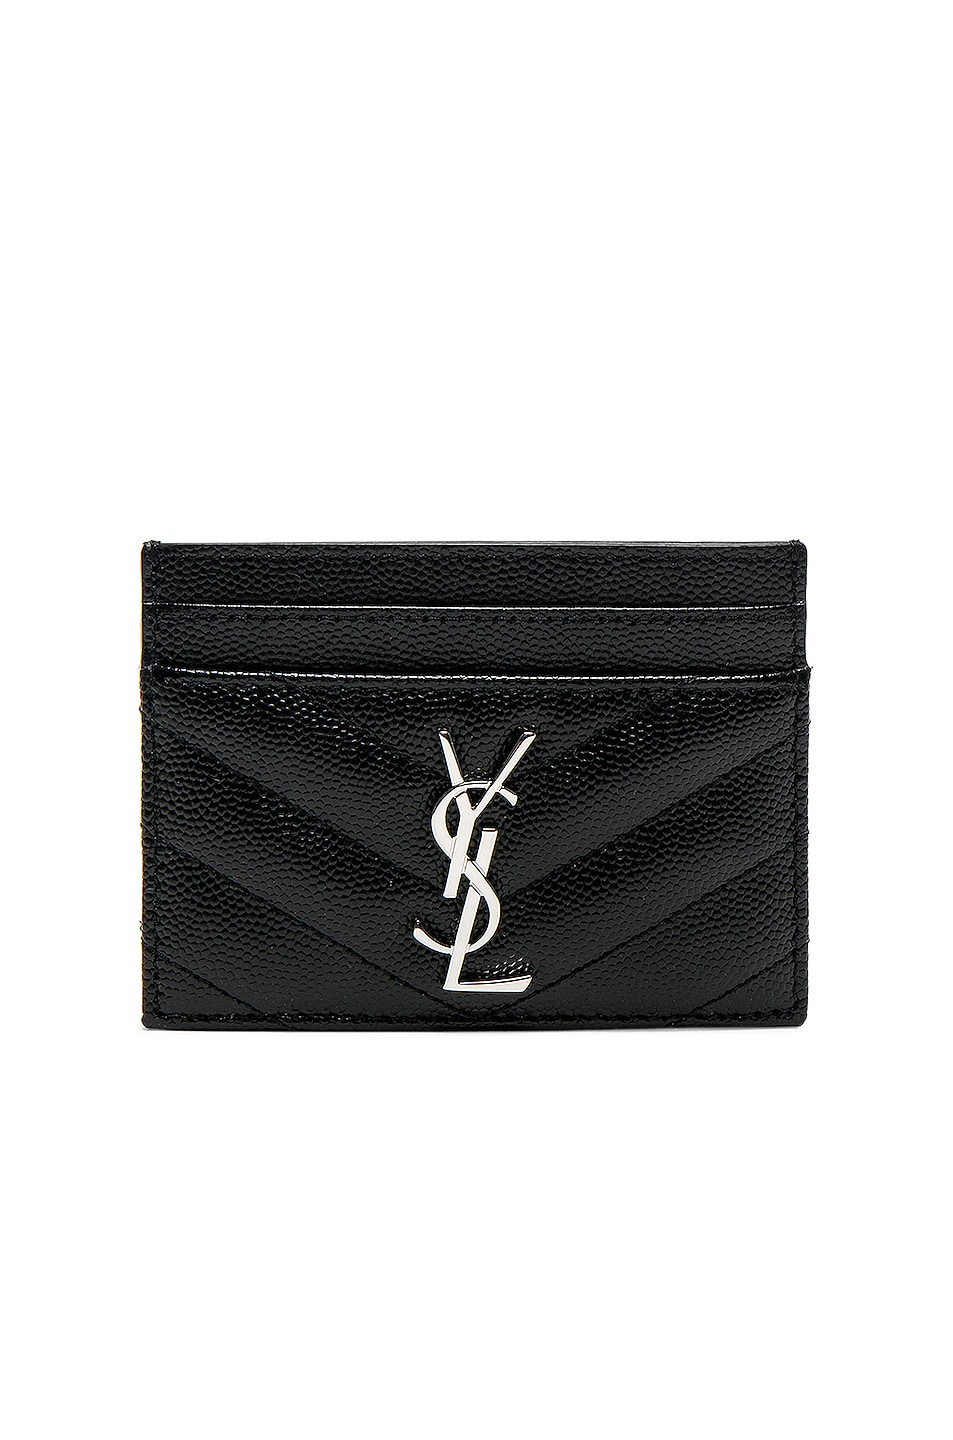 Image 1 of Saint Laurent Monogramme Credit Card Case in Black